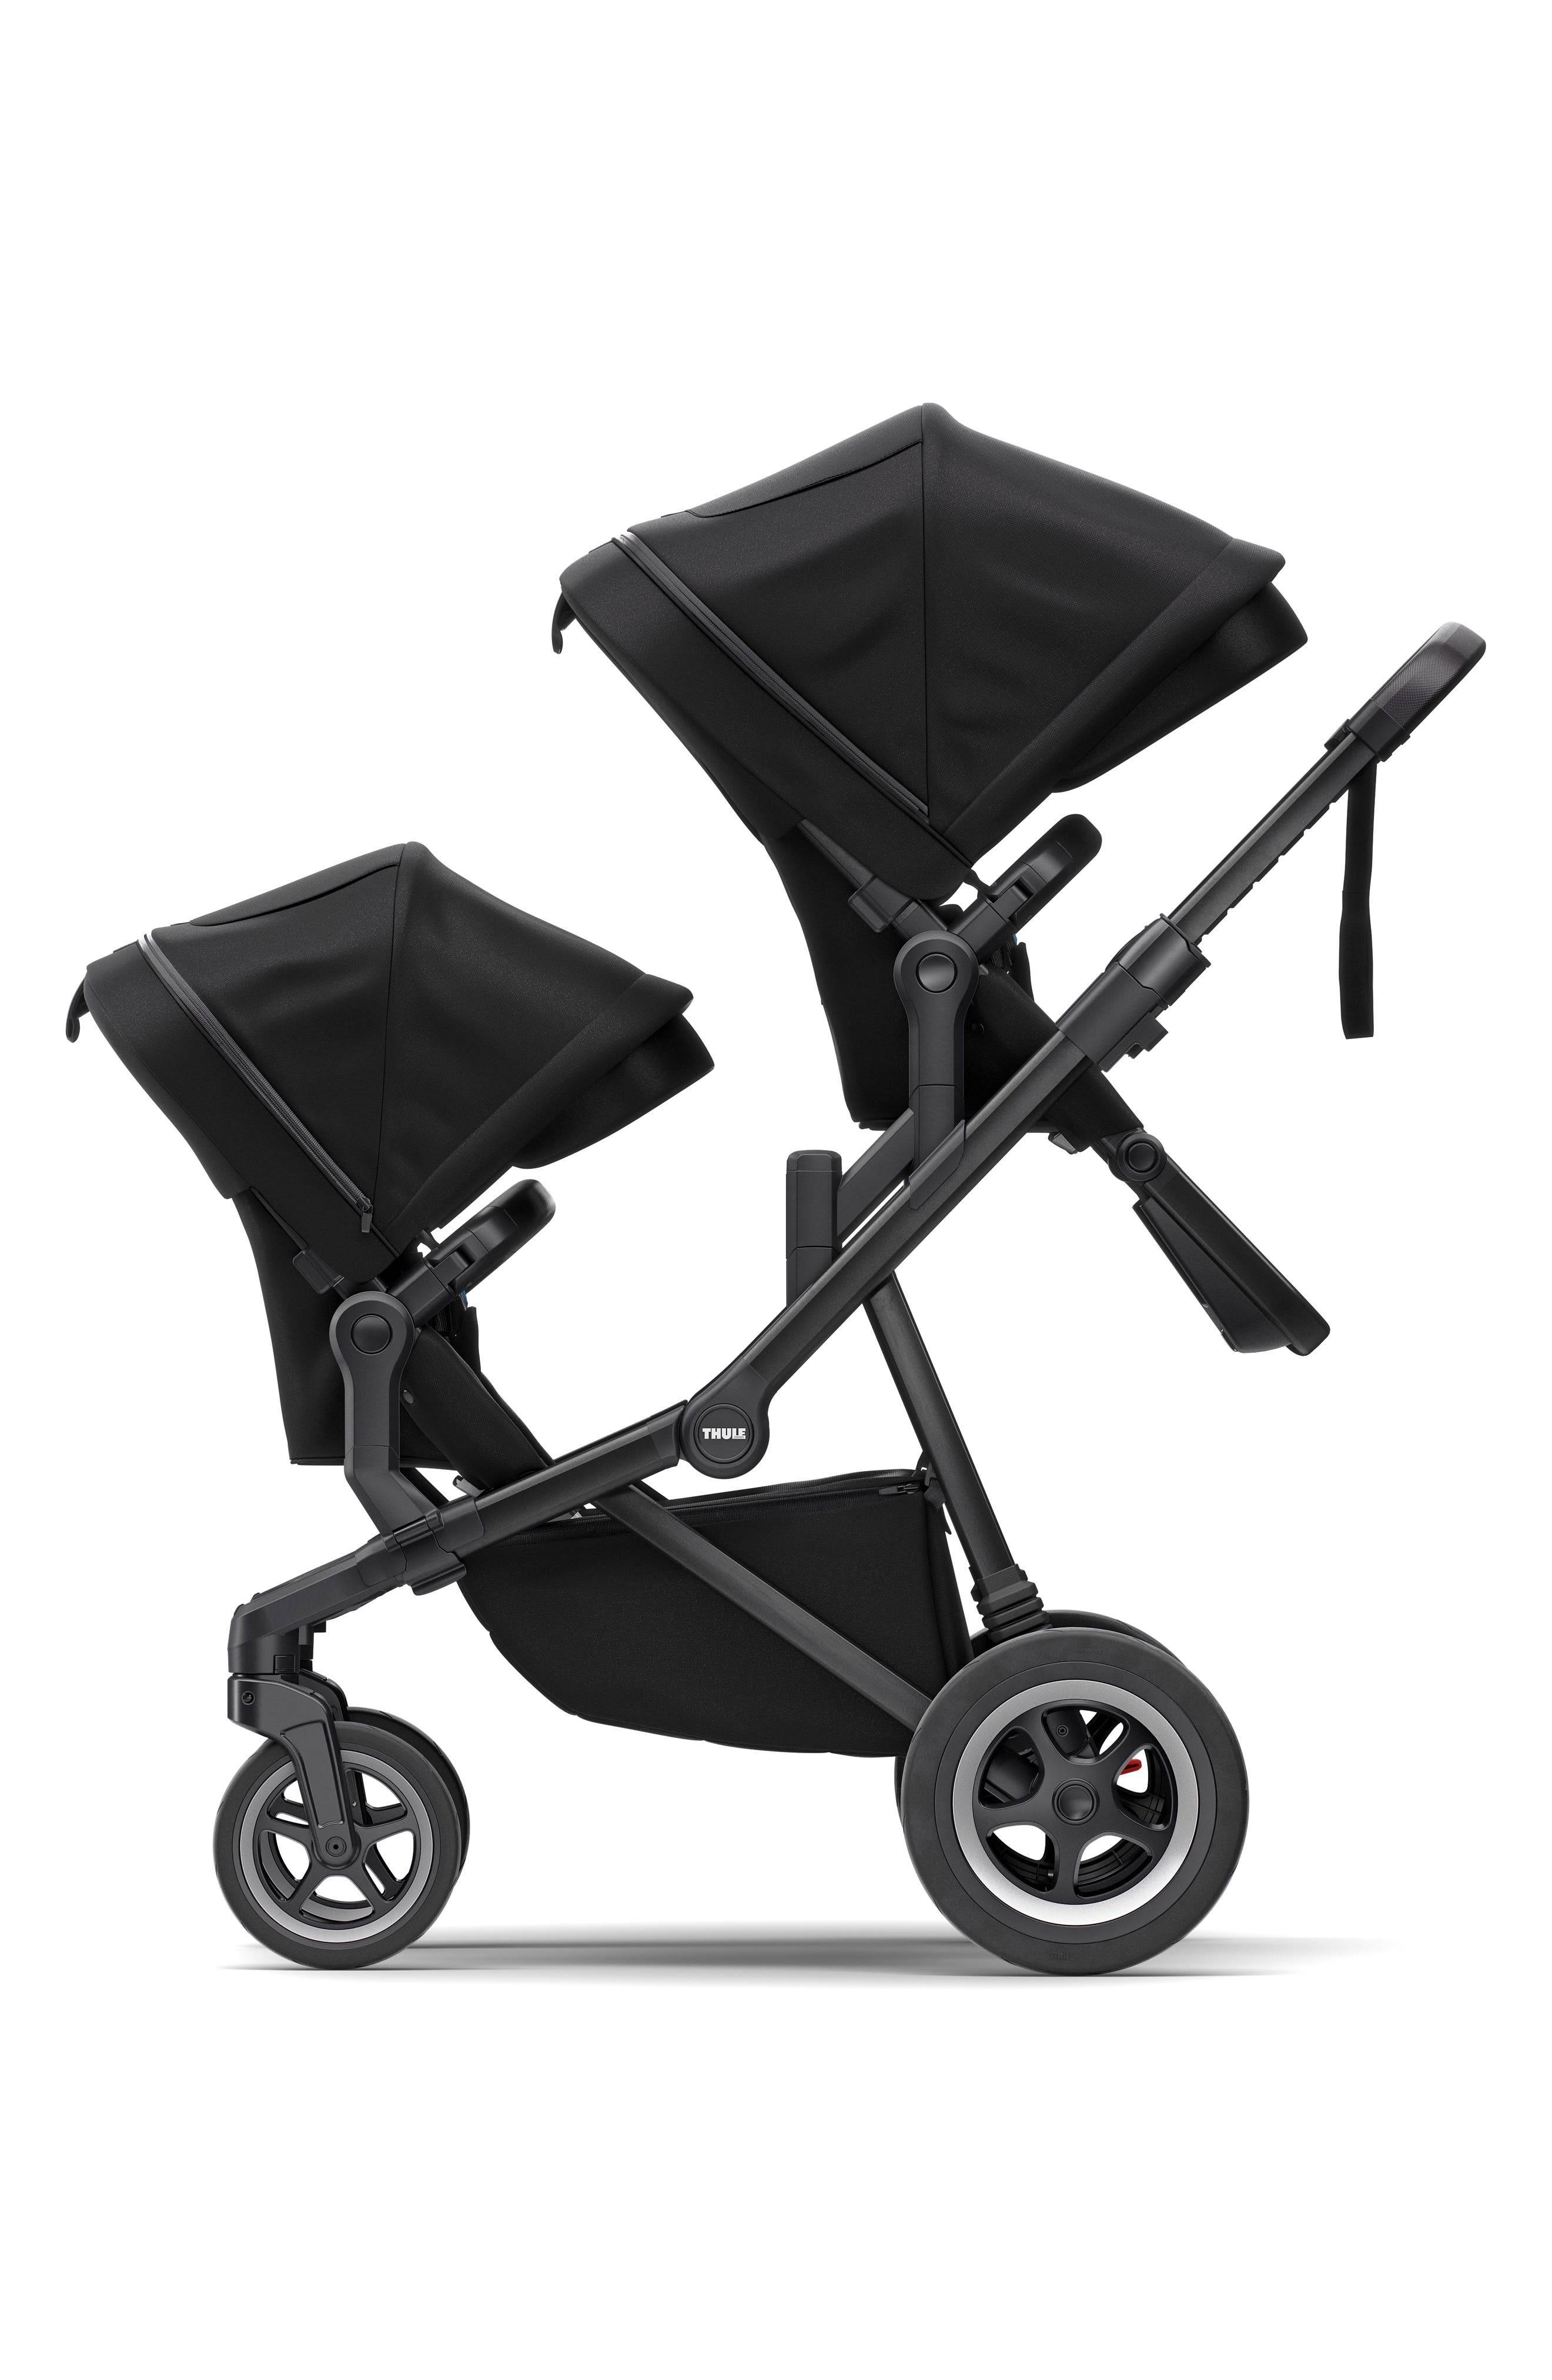 Thule Infant Thule Sibling Seat Accessory For Thule Sleek Stroller, Size One Size - Black